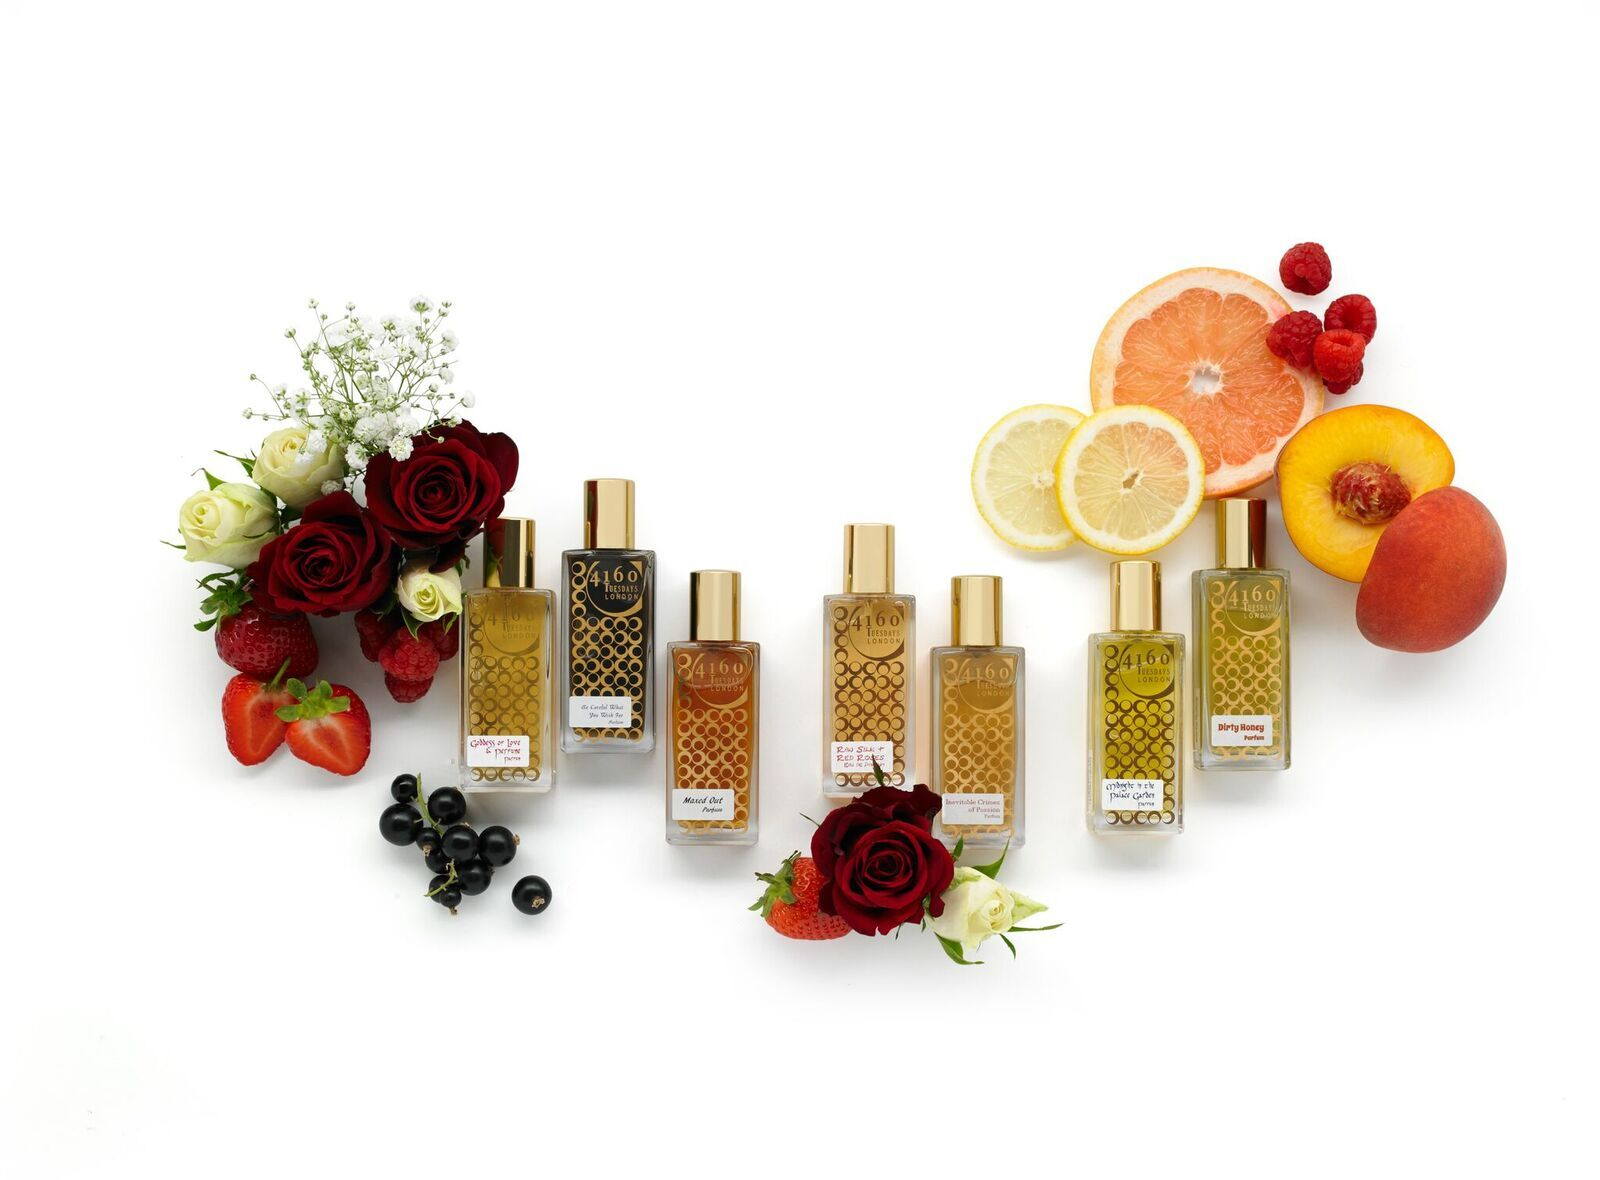 flowers and fruits with a range of perfume bottles